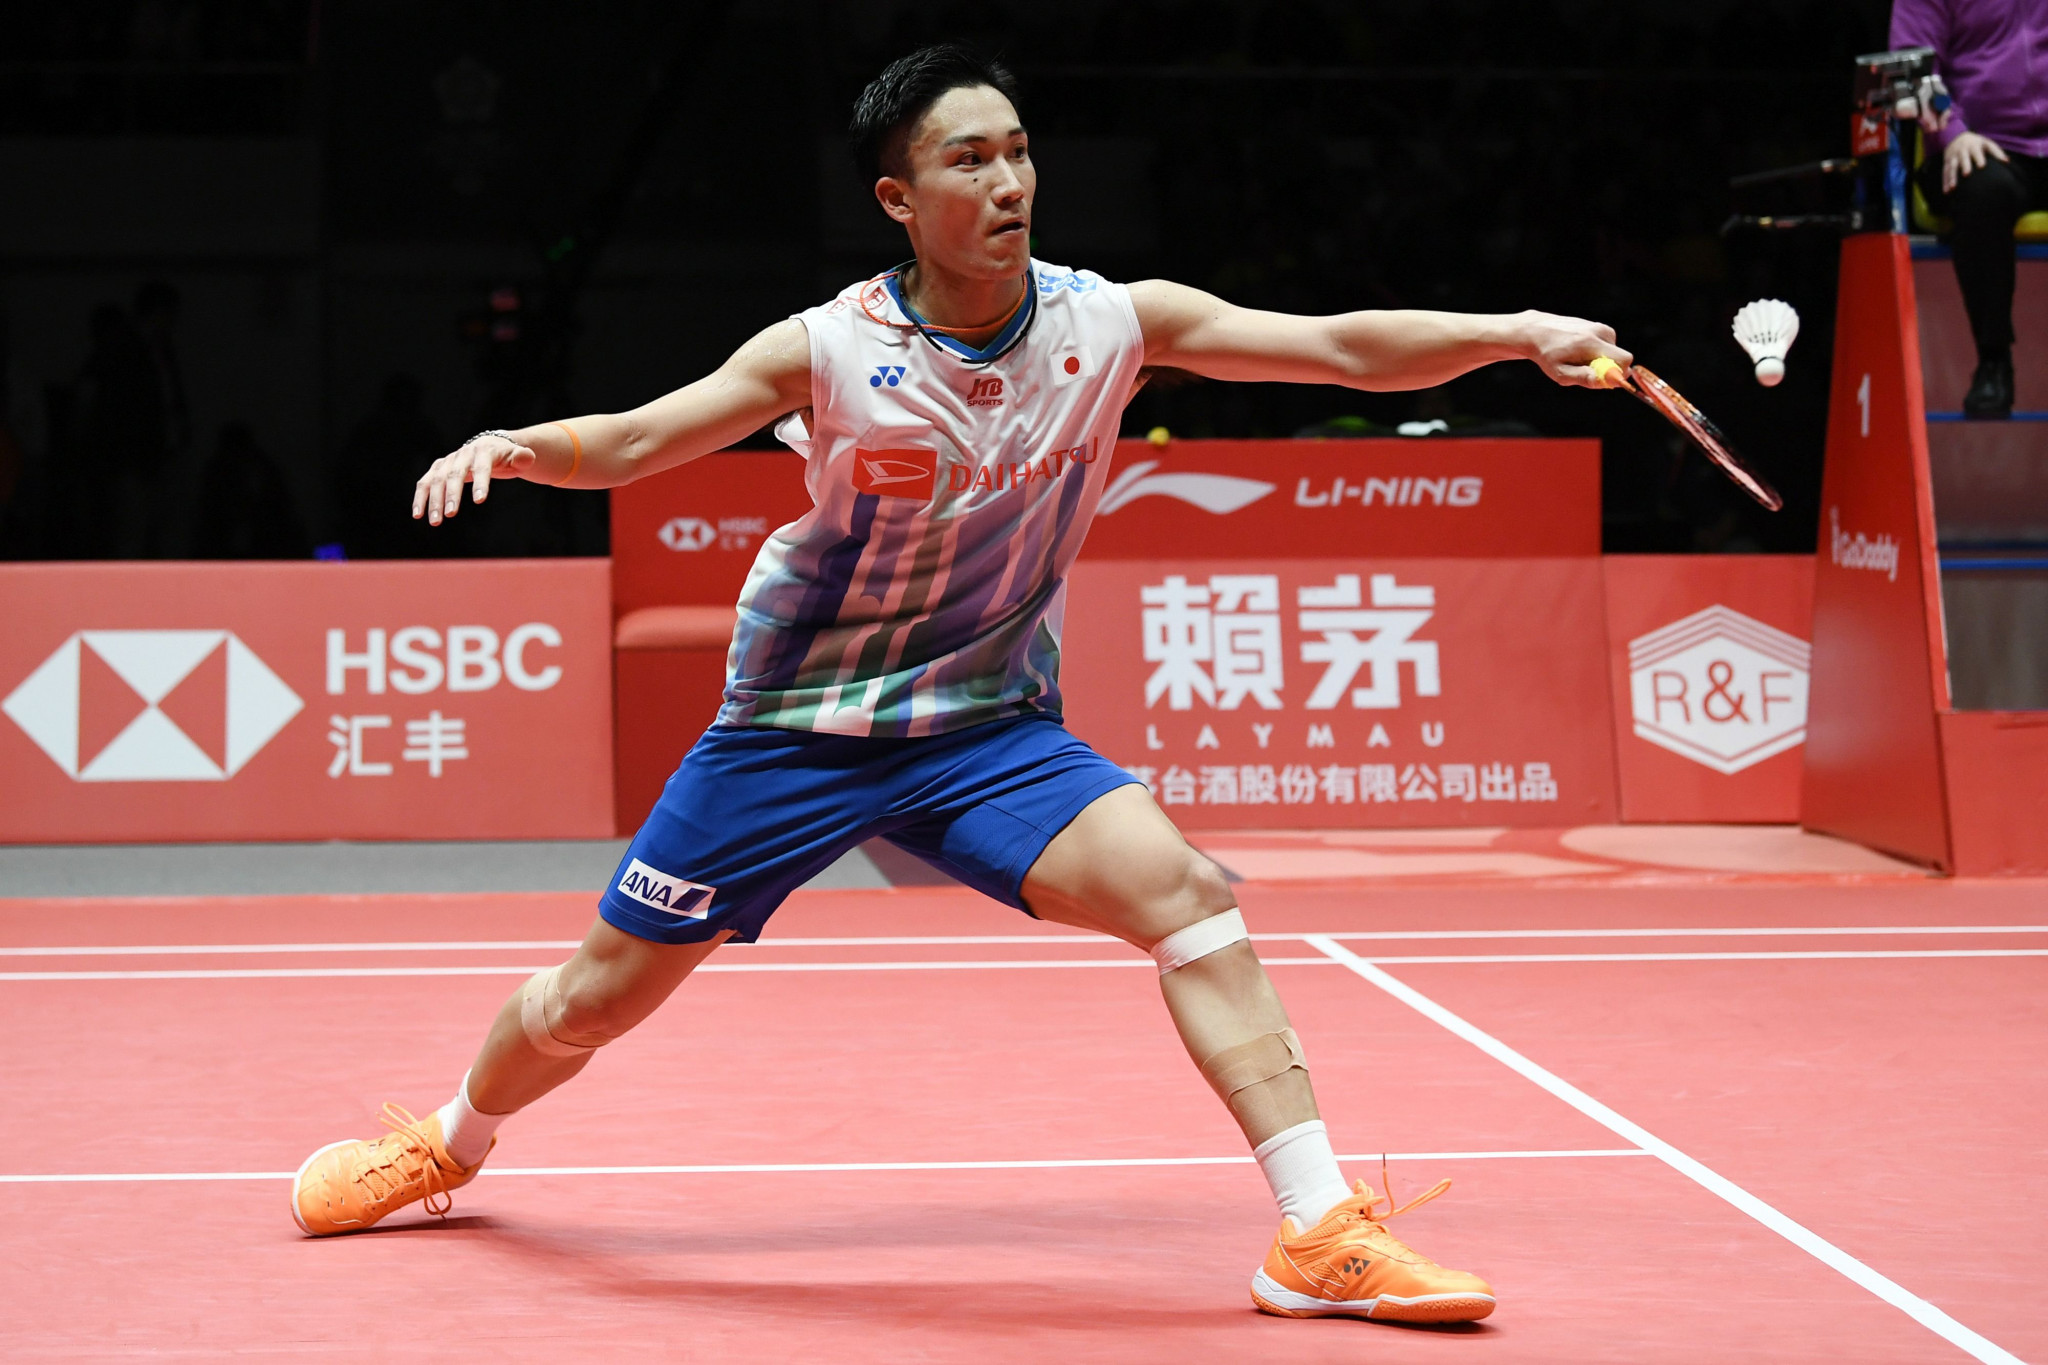 Japan's Kento Momota produced an absolute masterclass to beat home favourite Anthony Sinisuka Ginting and book his place in the semi-finals of the BWF Indonesia Masters in Jakarta ©Getty Images